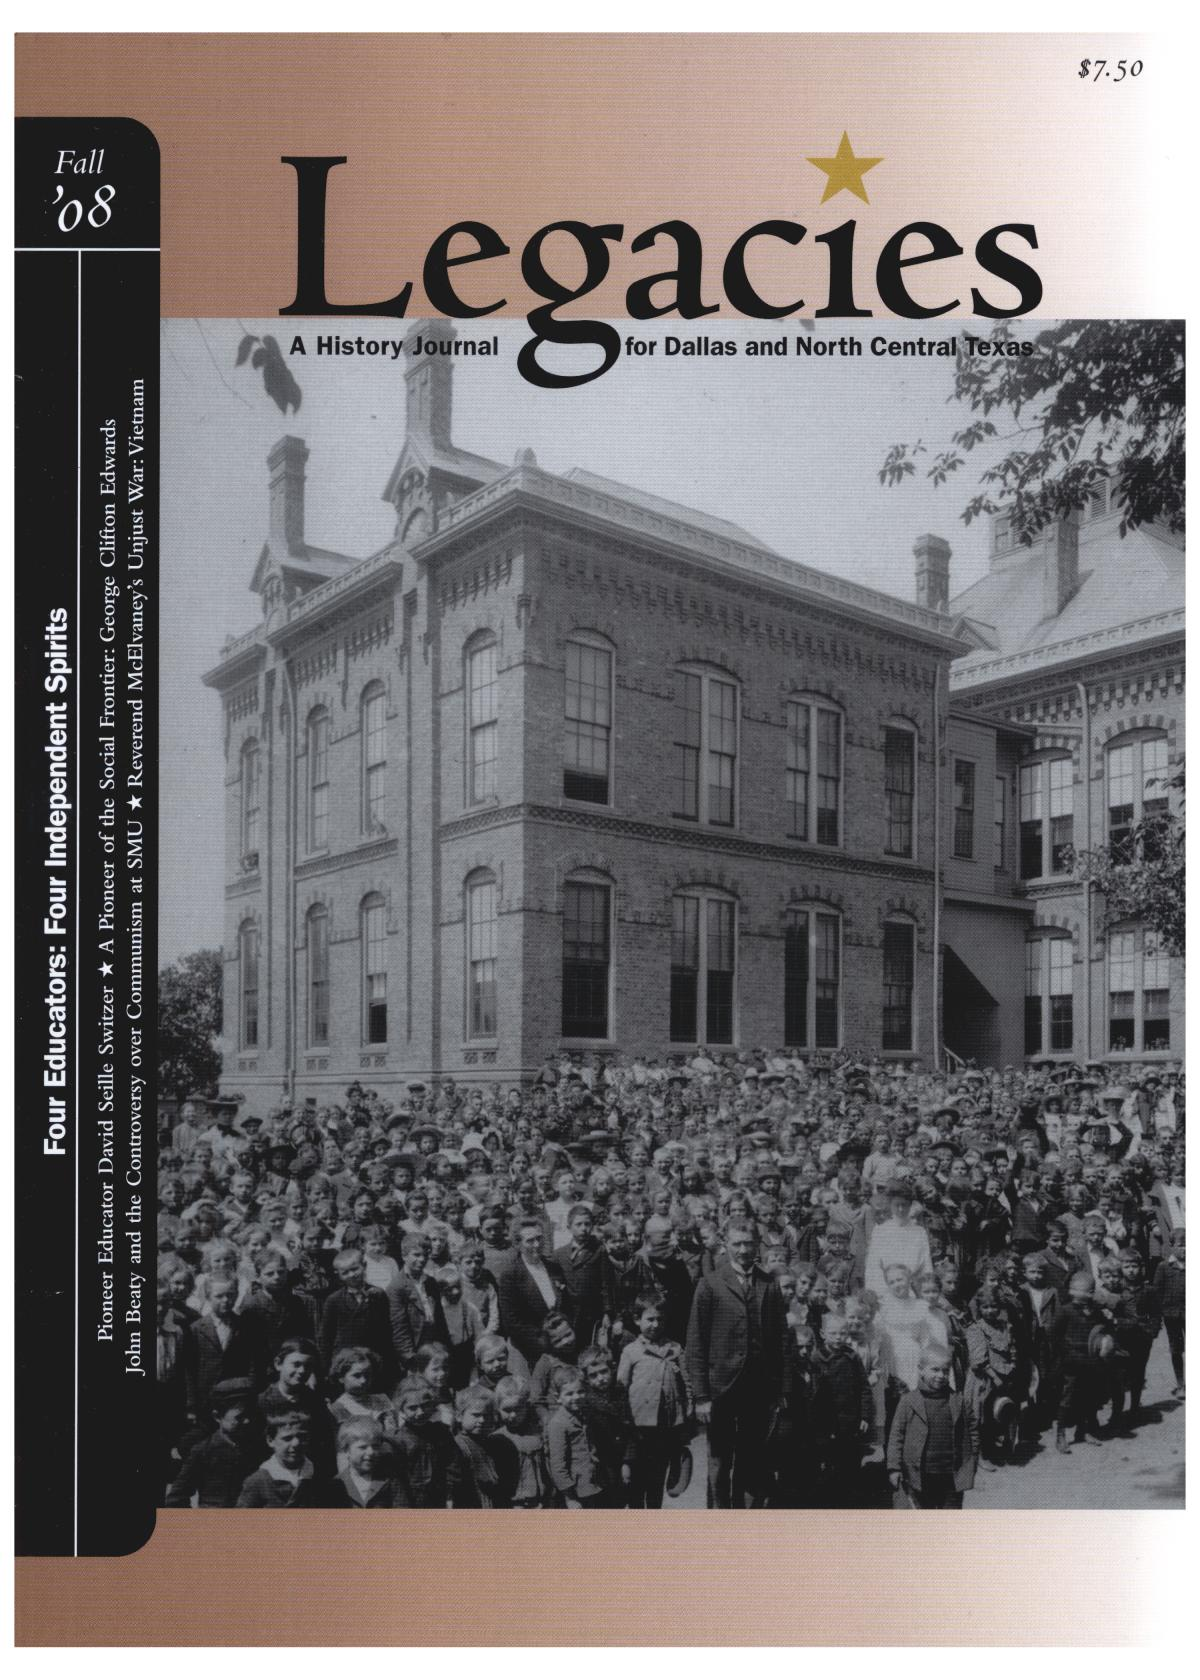 Legacies: A History Journal for Dallas and North Central Texas, Volume 20, Number 2, Fall, 2008                                                                                                      [Sequence #]: 1 of 68